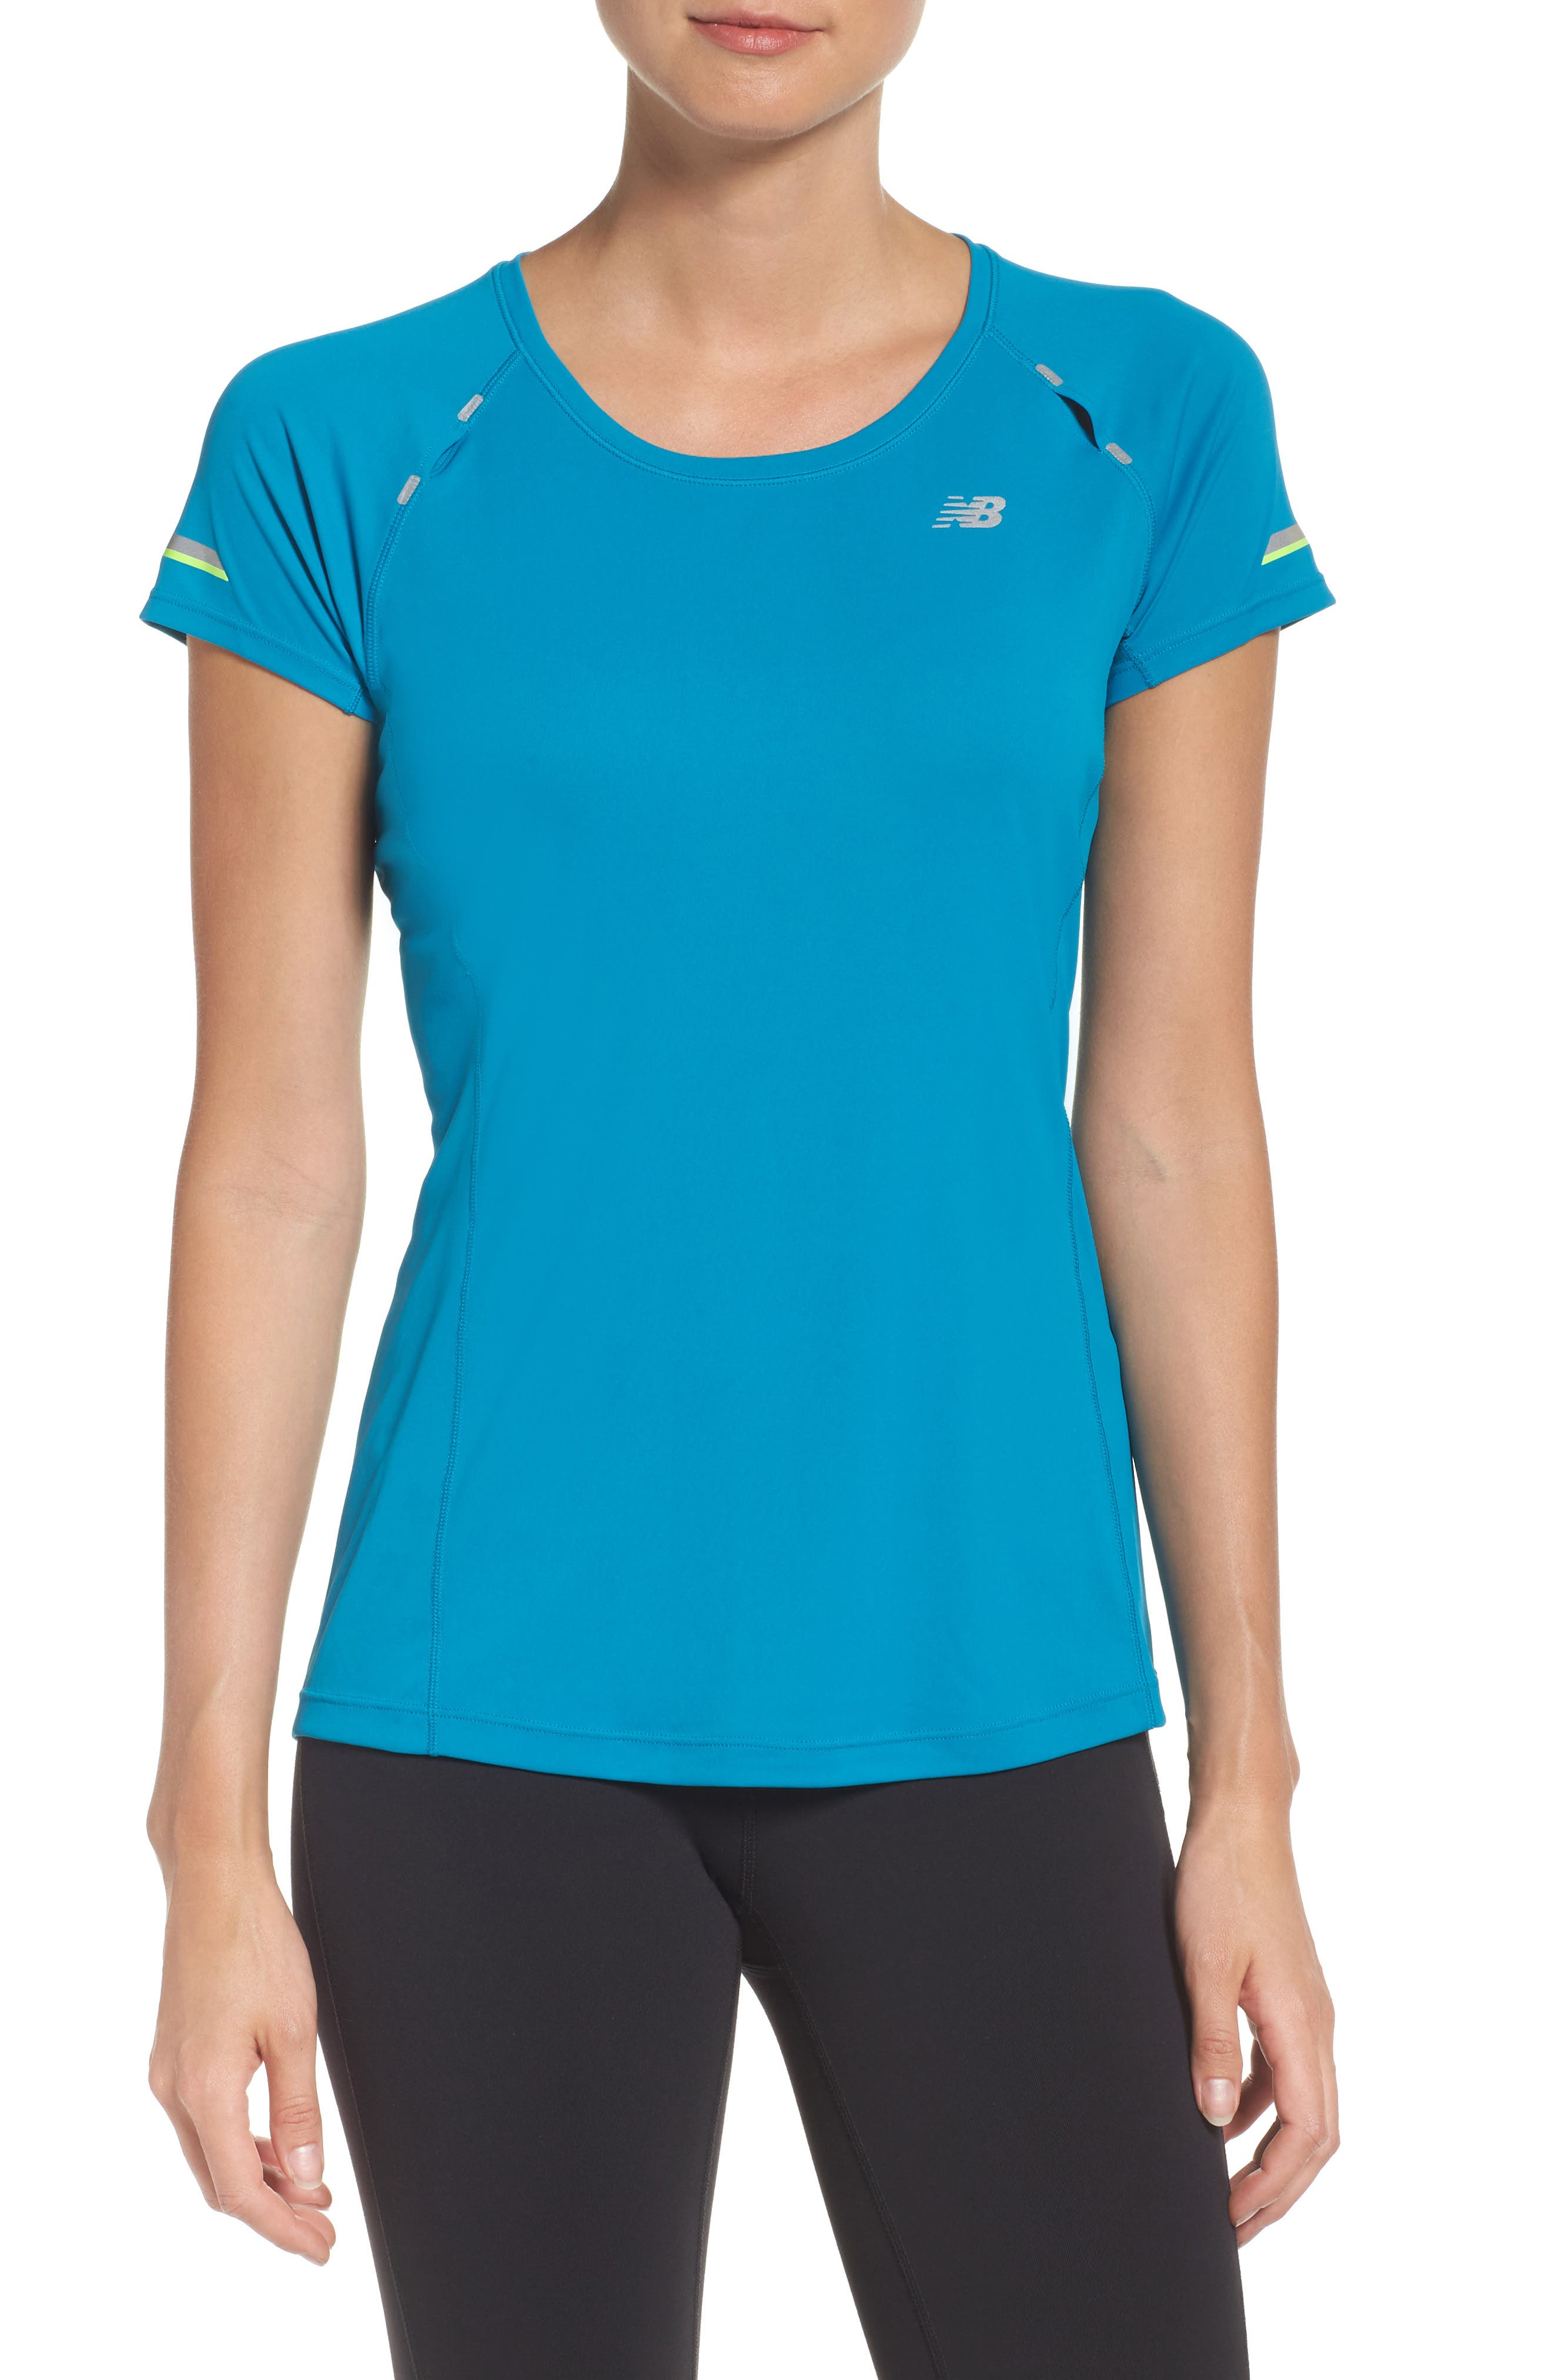 New Balance 'Ice' Mesh Back Tee